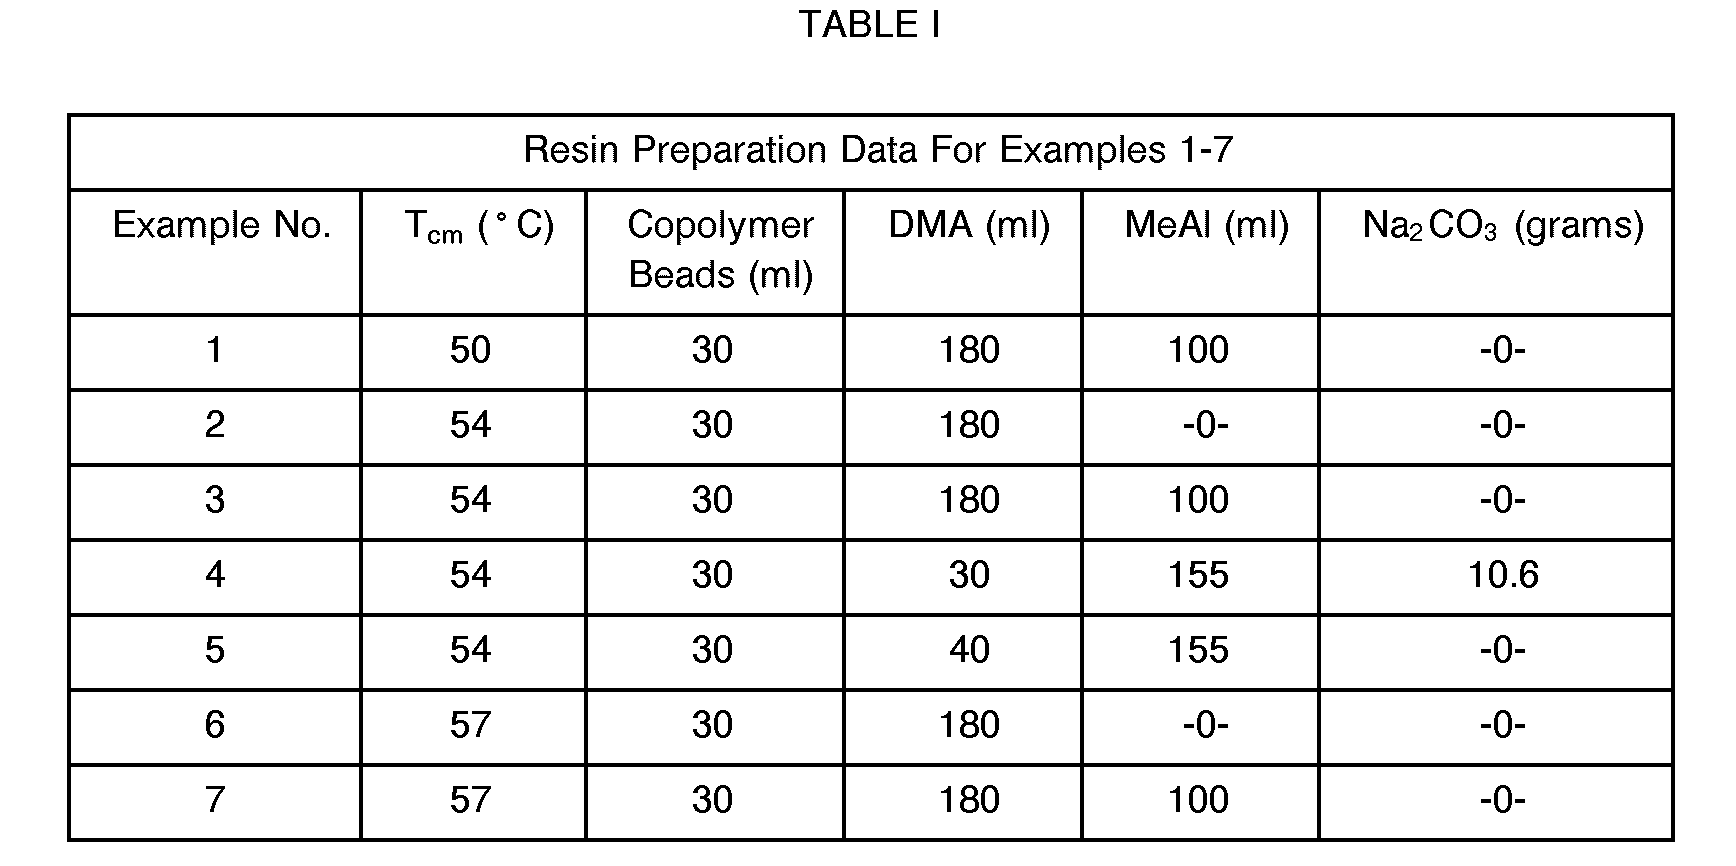 Worksheets Table Of Measurement Gram table of measurement gram worksheets rejuvenems thousands patent ep0481603a1 separation weak organic acids from liquid a 10